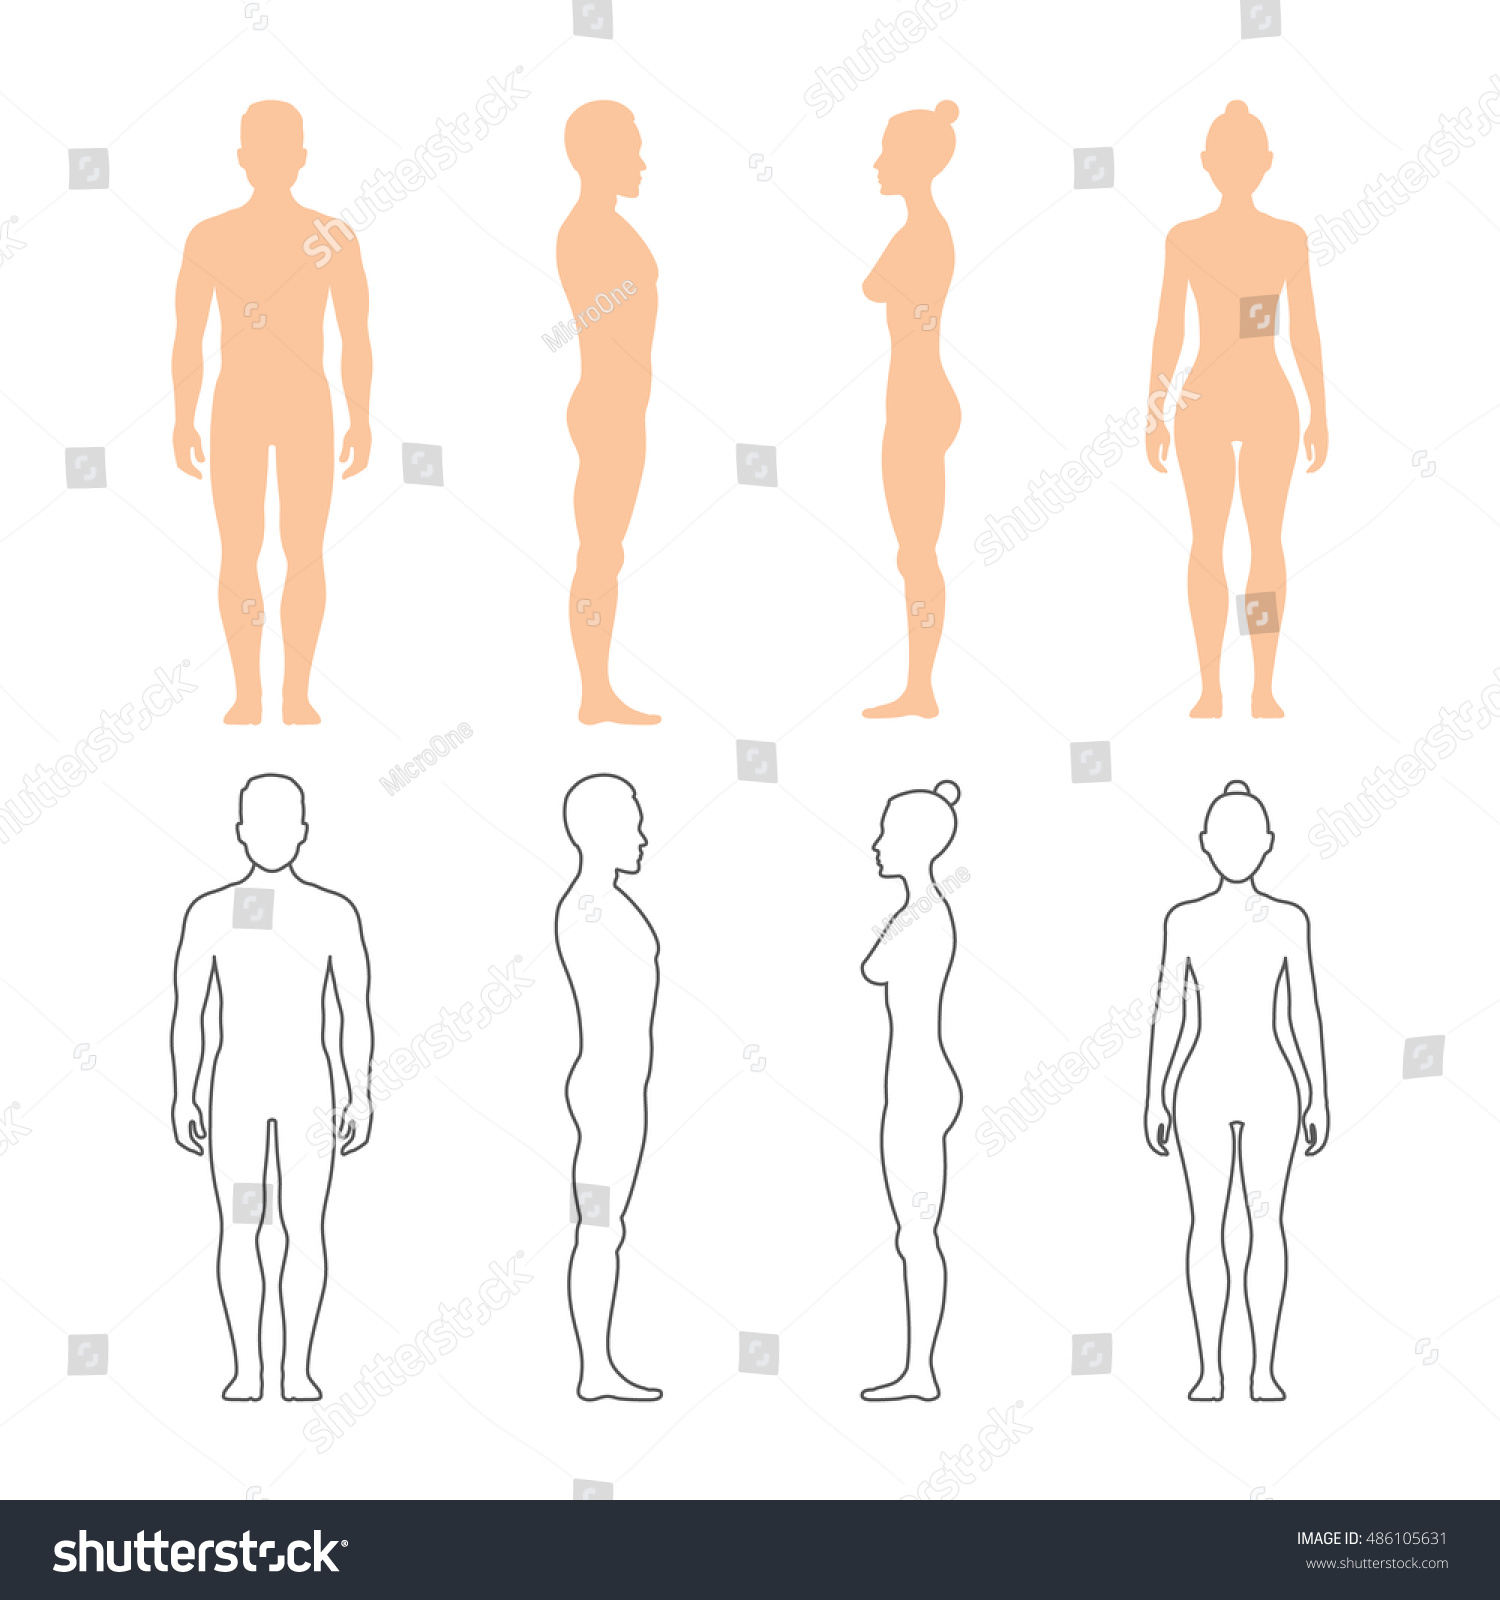 Male Female Human Vector Silhouettes - 242.5KB